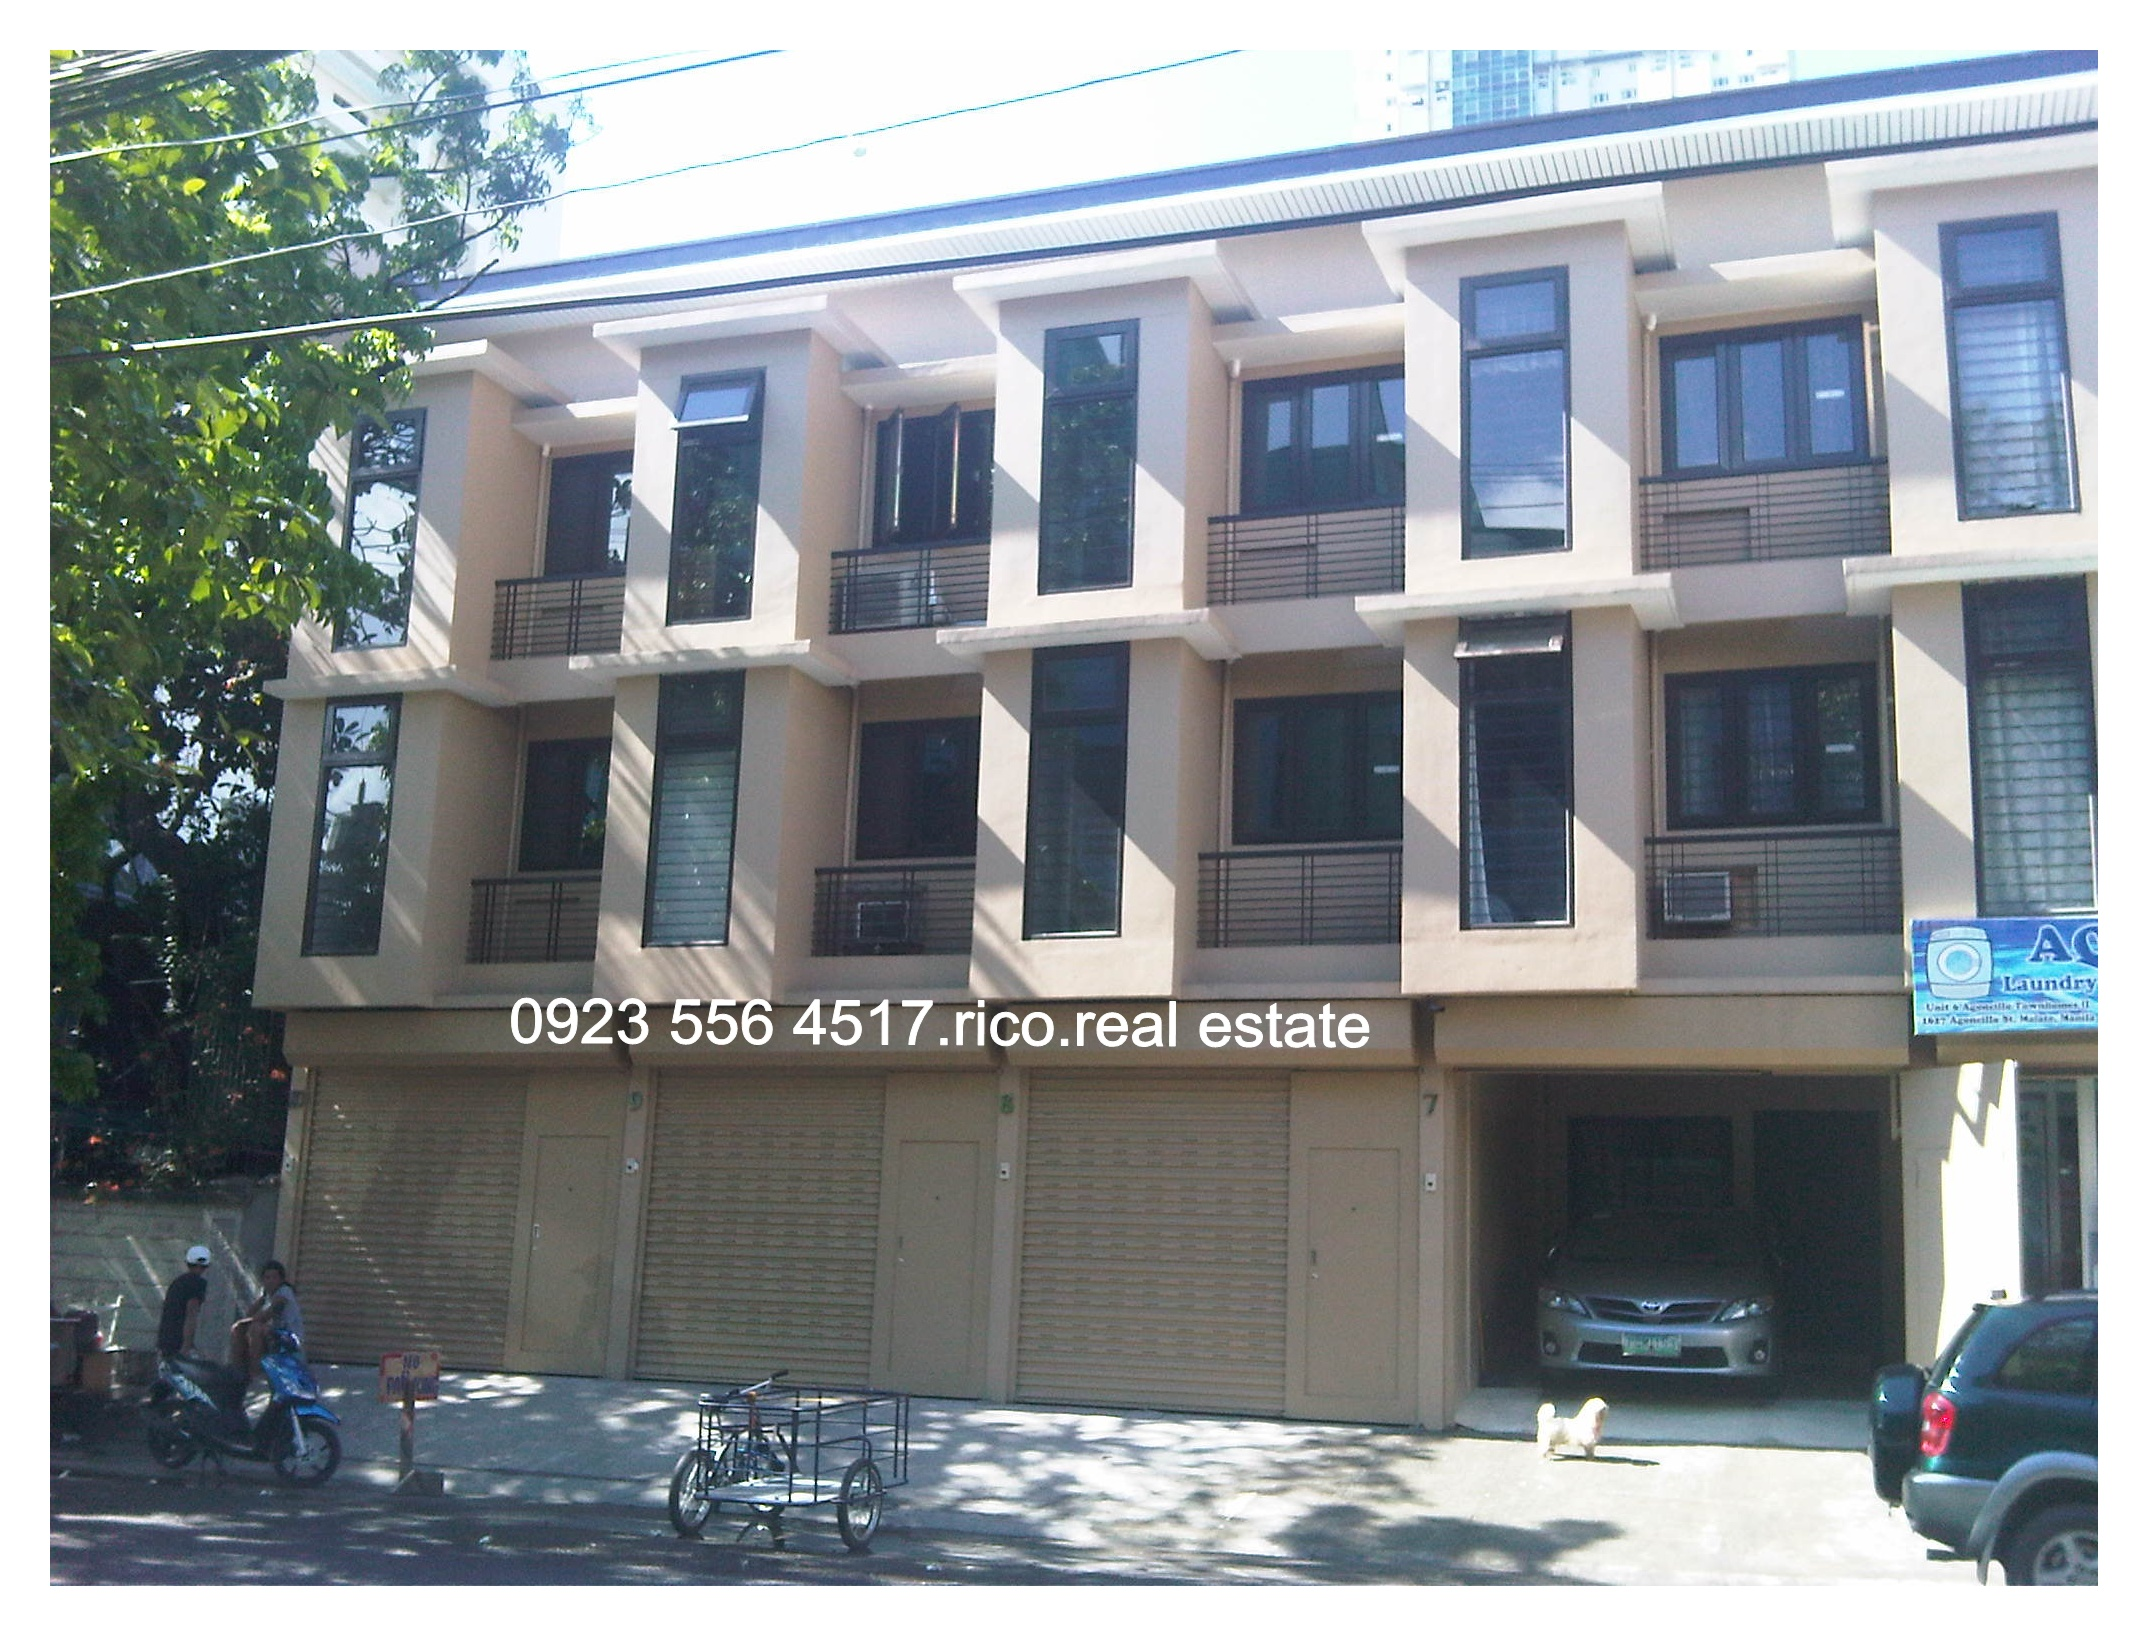 Agoncillo 2 House annd Lot for sale near UP Manila,Robinsons